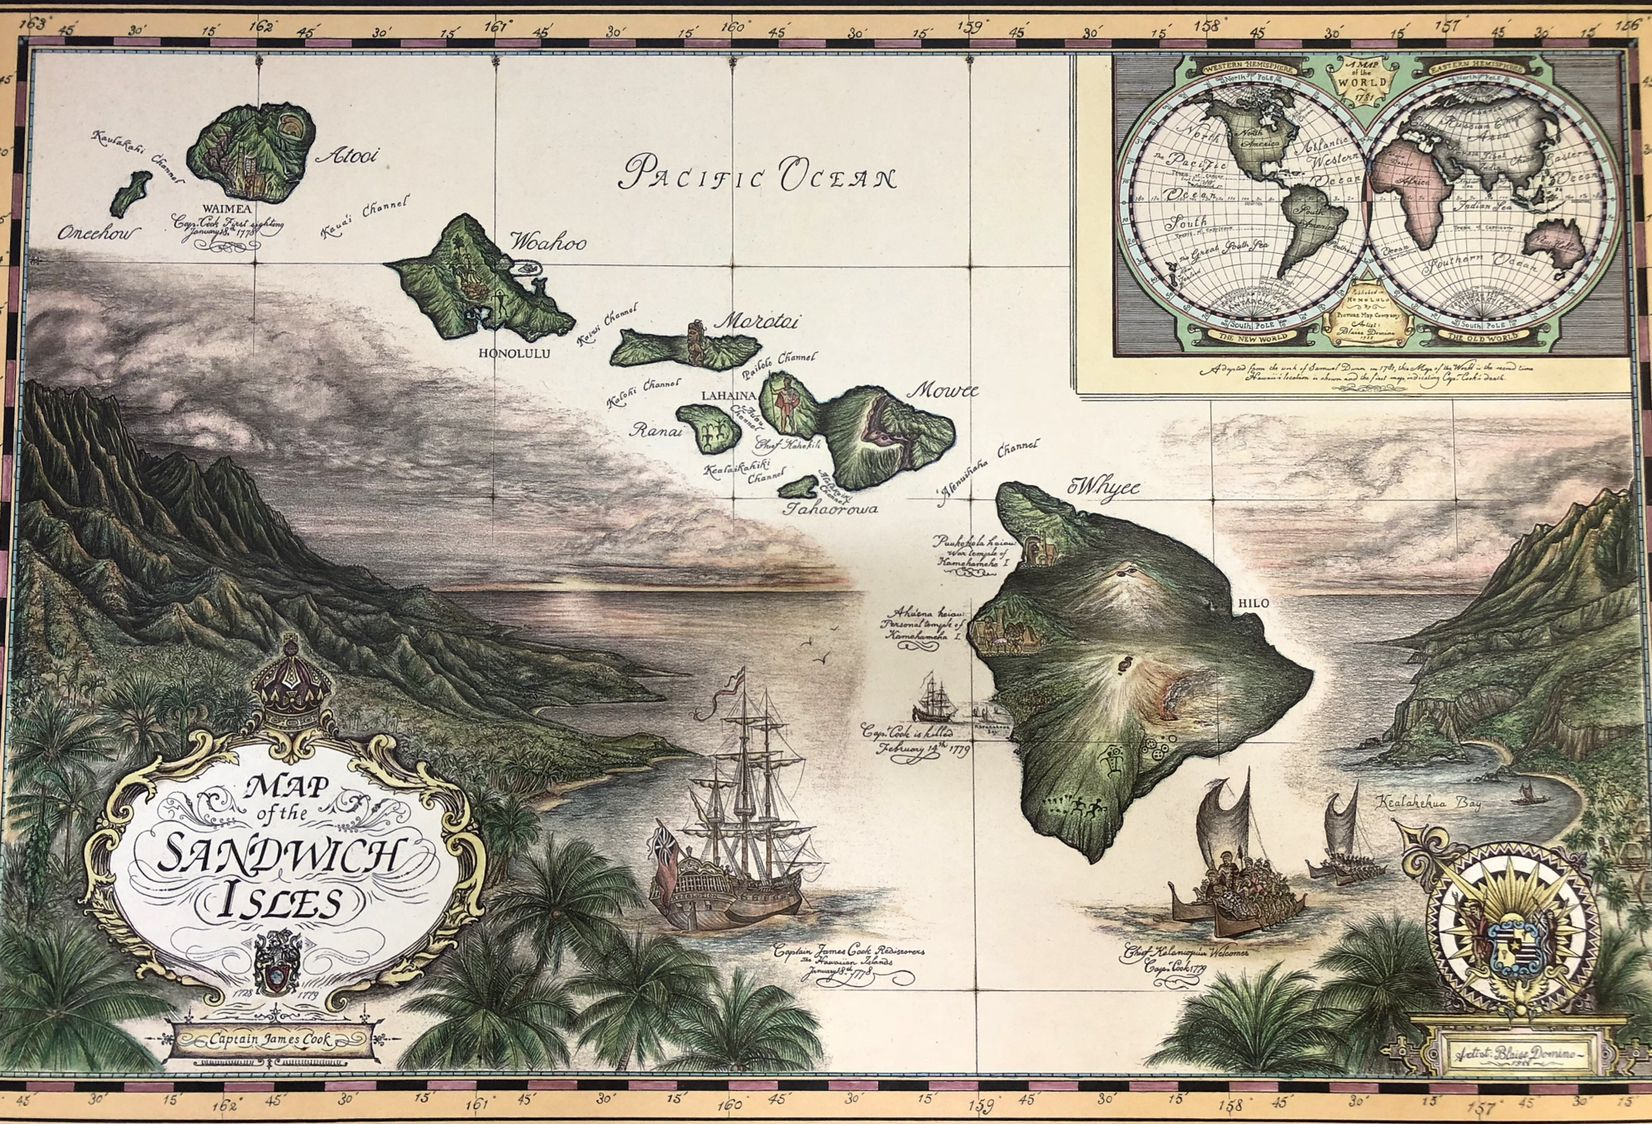 Sandwich Islands map - old map of Hawaii Islands | 1000 ... on map of carribean, map of bahamas, map of bali, map of malaysia, map of seychelles, map of brazil, map of austrailia, map of spain, map of new zealand, map of thailand, map of moorea, map of costa rica, map of switzerland, map of fiji, map of pacific ocean, map of kwajalein, map of south pacific, map of french polynesia, map of bora bora, map of hawaii,